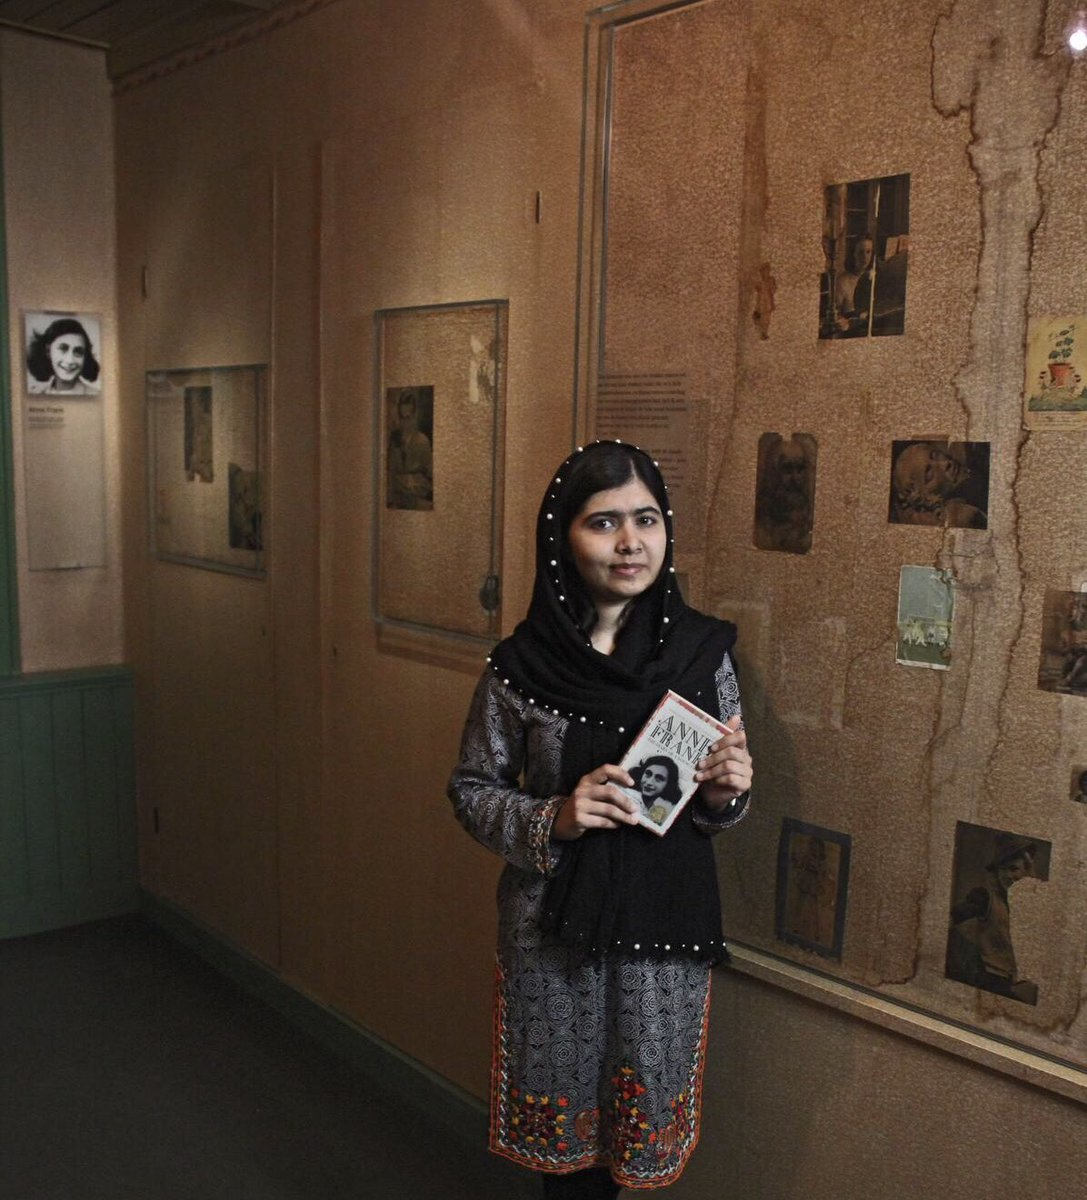 The words Anne Frank wrote in this room still remind us to cherish and defend human rights. Today, I am thinking of Palestinian and Rohingya children- and all around the world still struggling to achieve Anne's dream of freedom. #HumanRightsDay